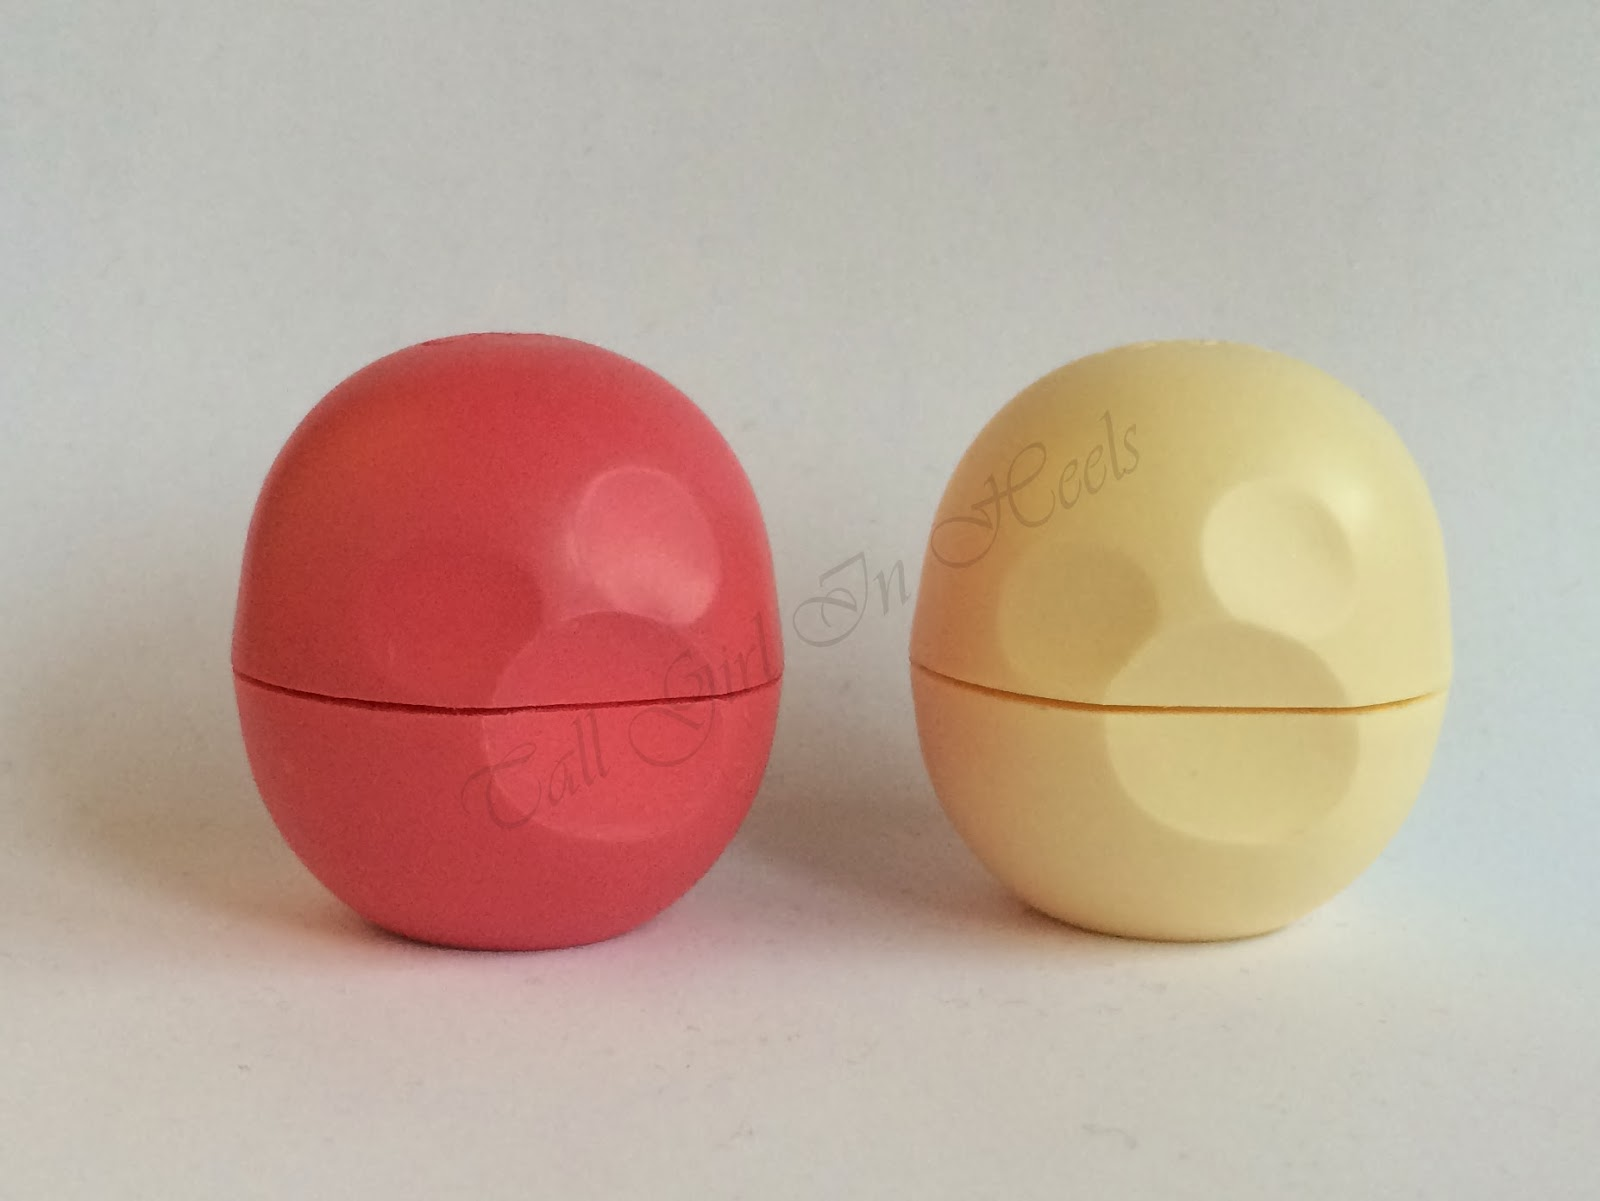 Alice In Wonderland limited edition EOS lip balm